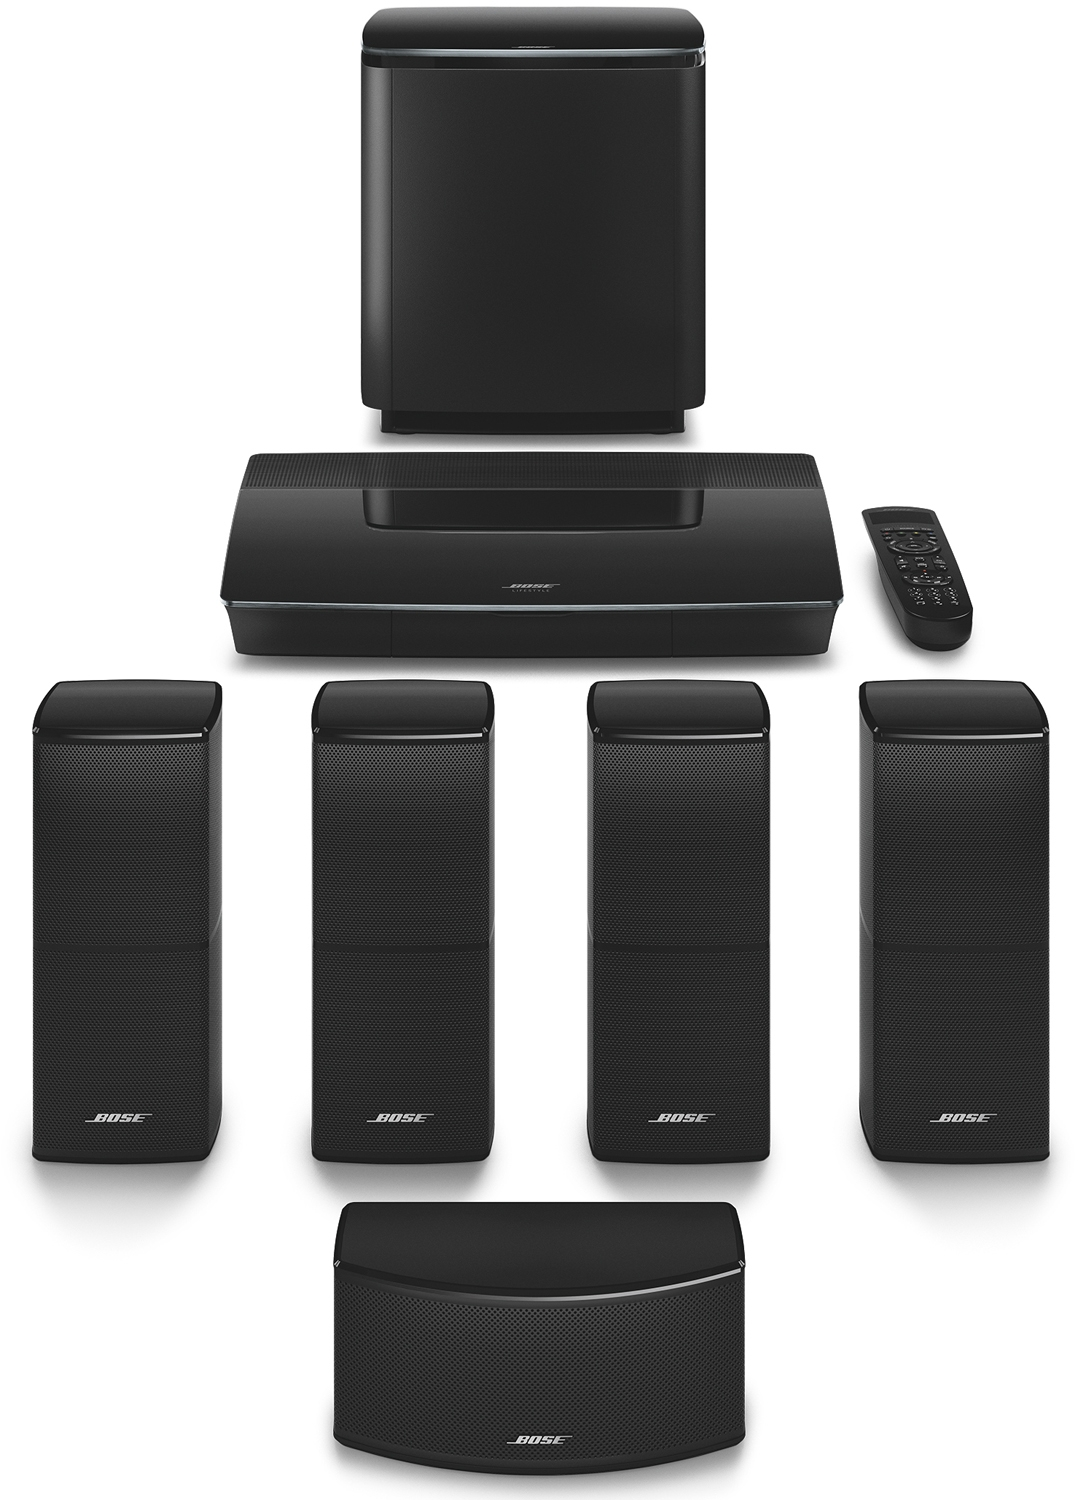 e5d76b5500 Bose Black Lifestyle 600 Home Entertainment System - 761682-1110